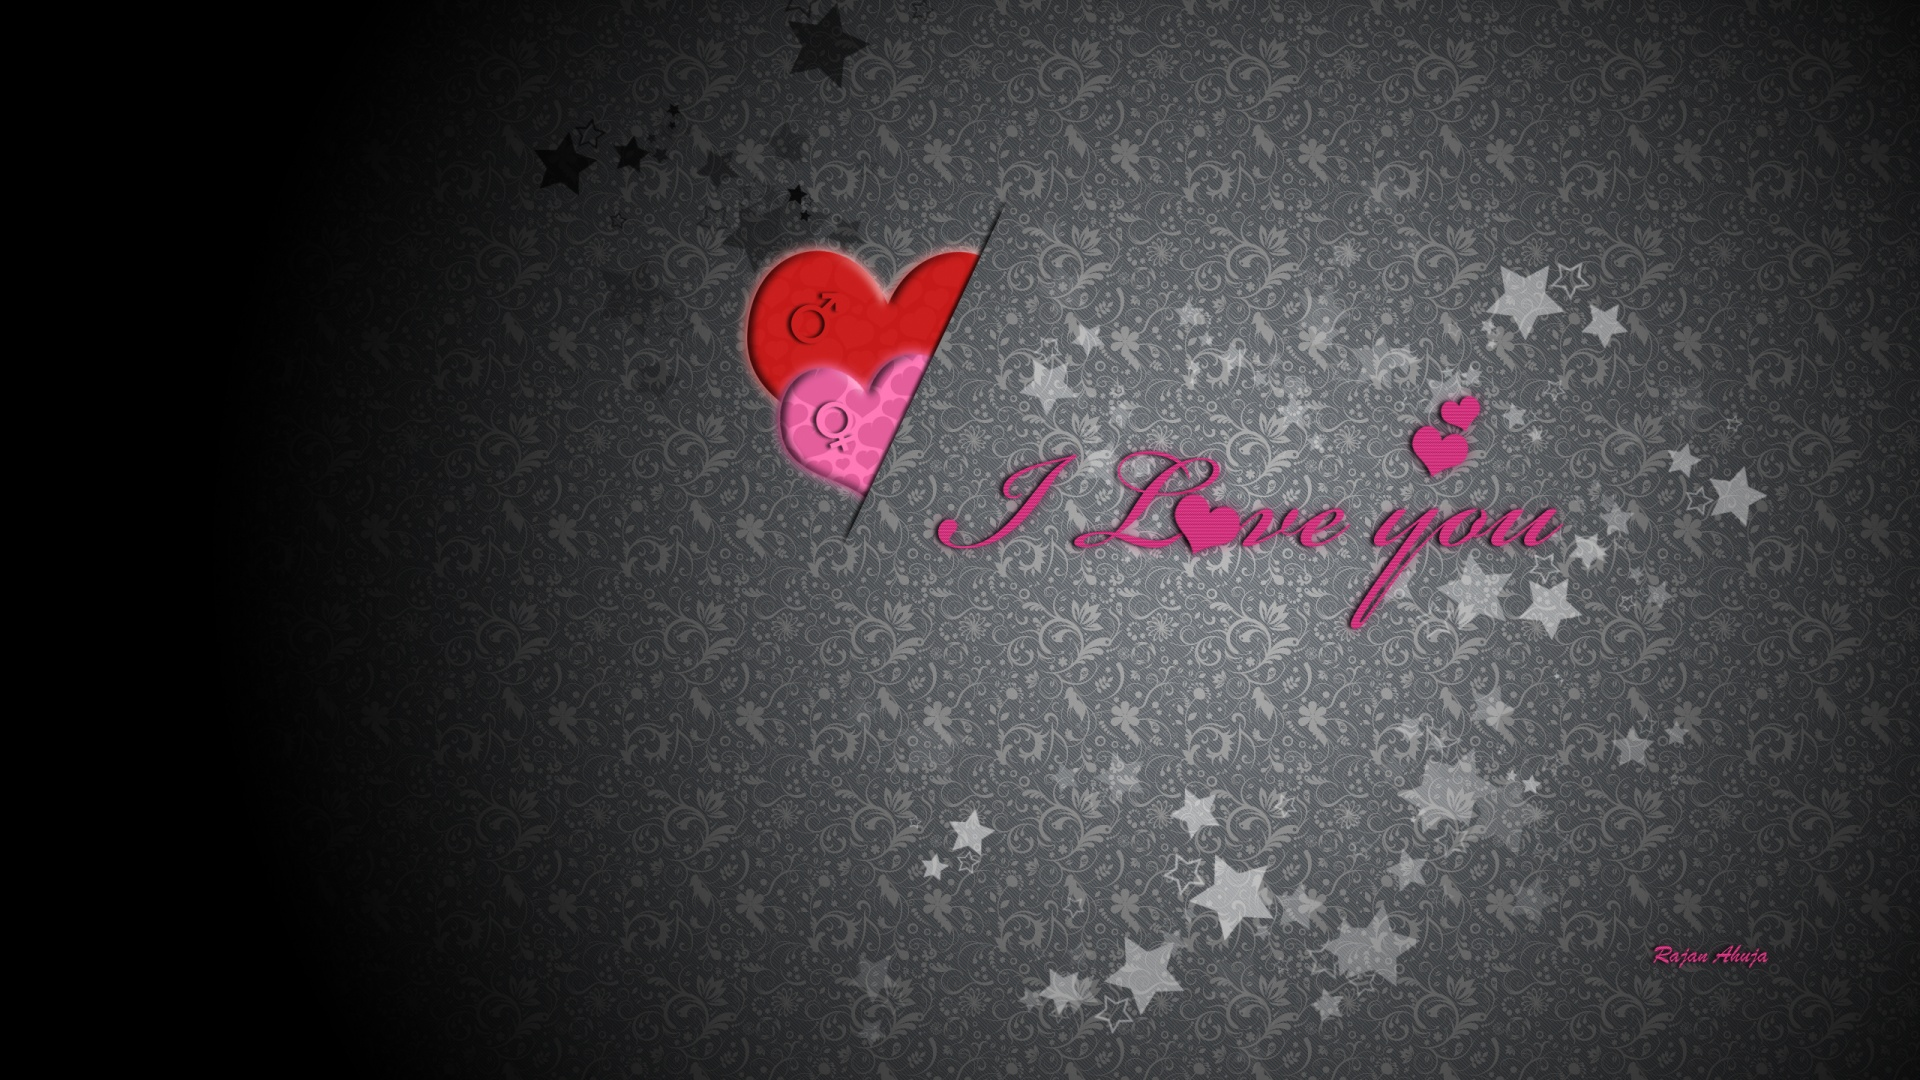 Wallpaper I Love You Photo : 1920x1080 I love you desktop Pc and Mac wallpaper